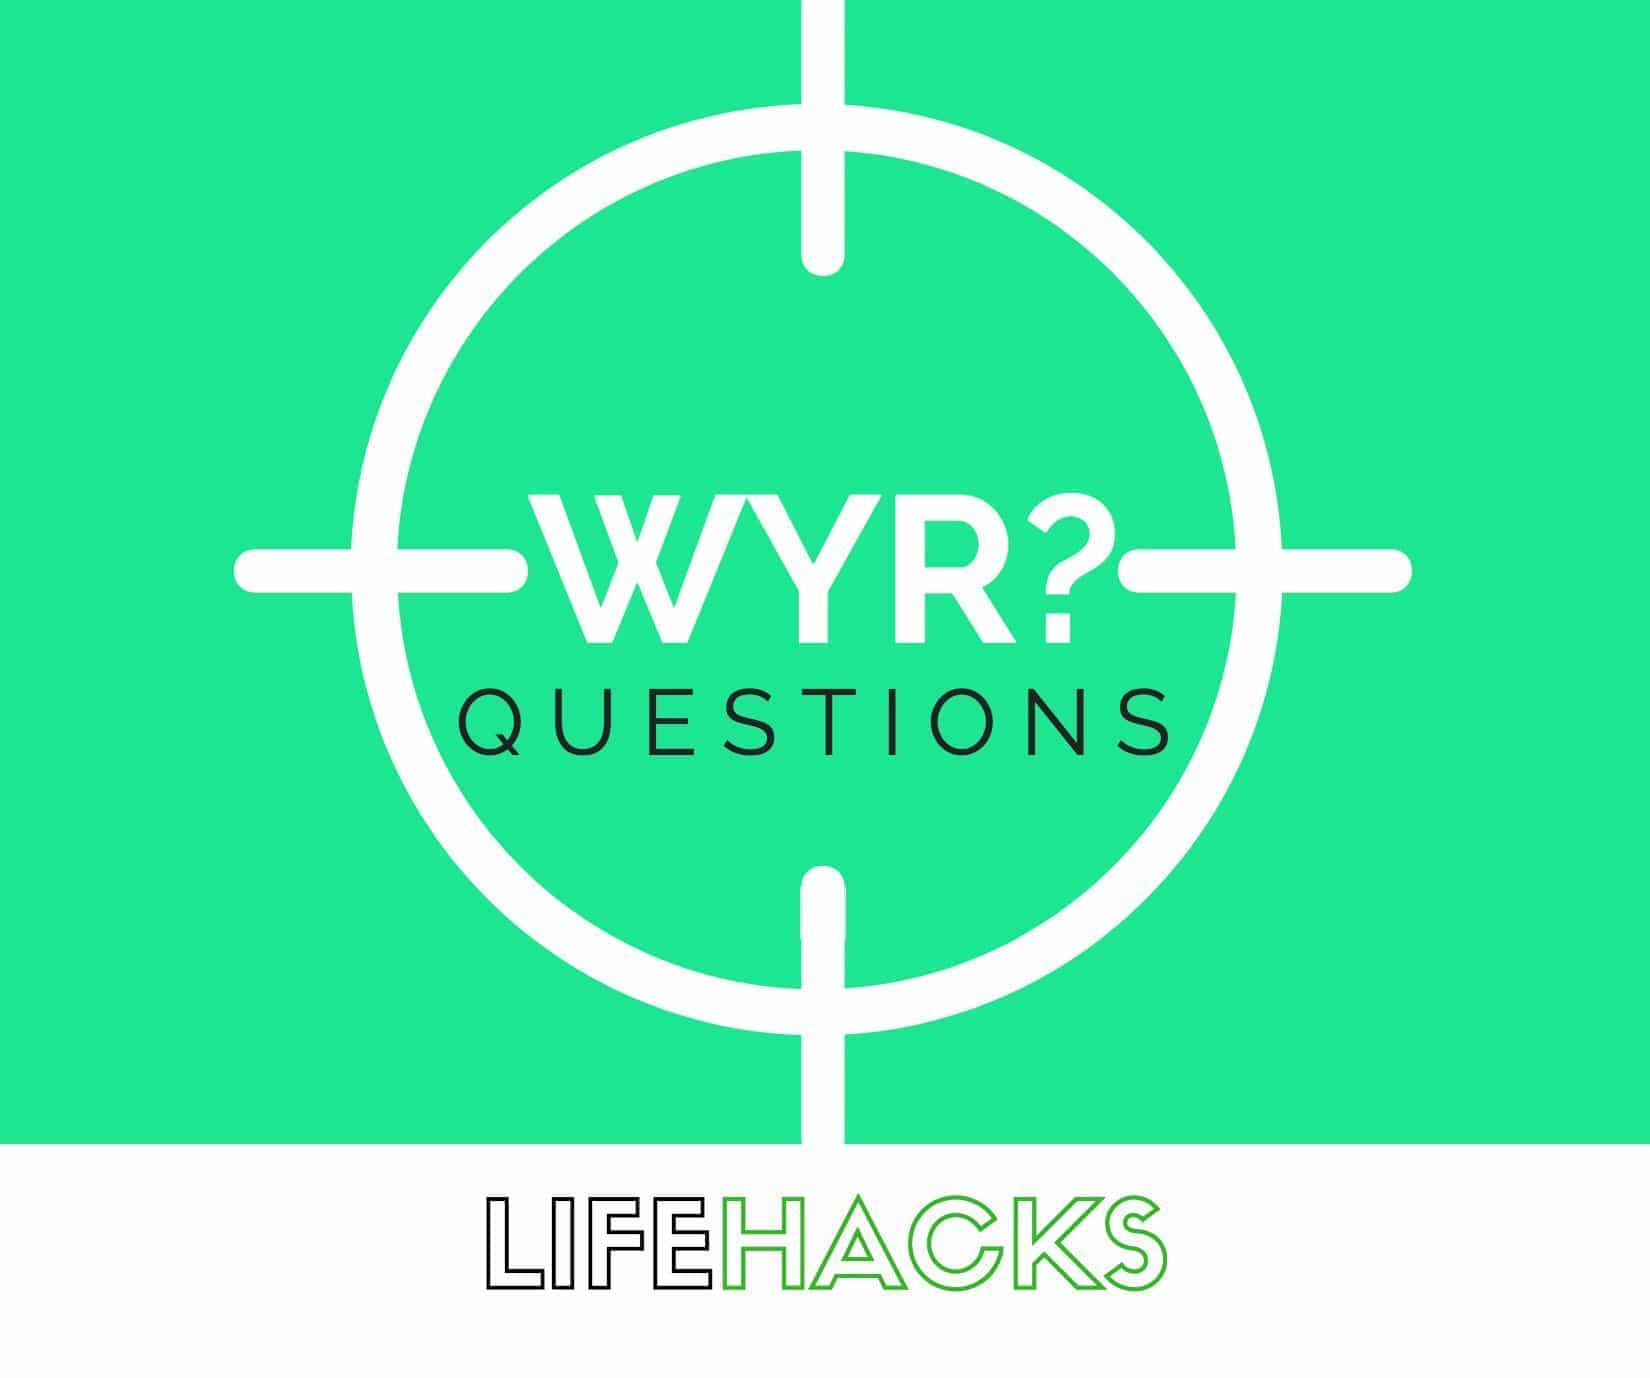 LifeHacks - Would you rather questions for Girlfriend